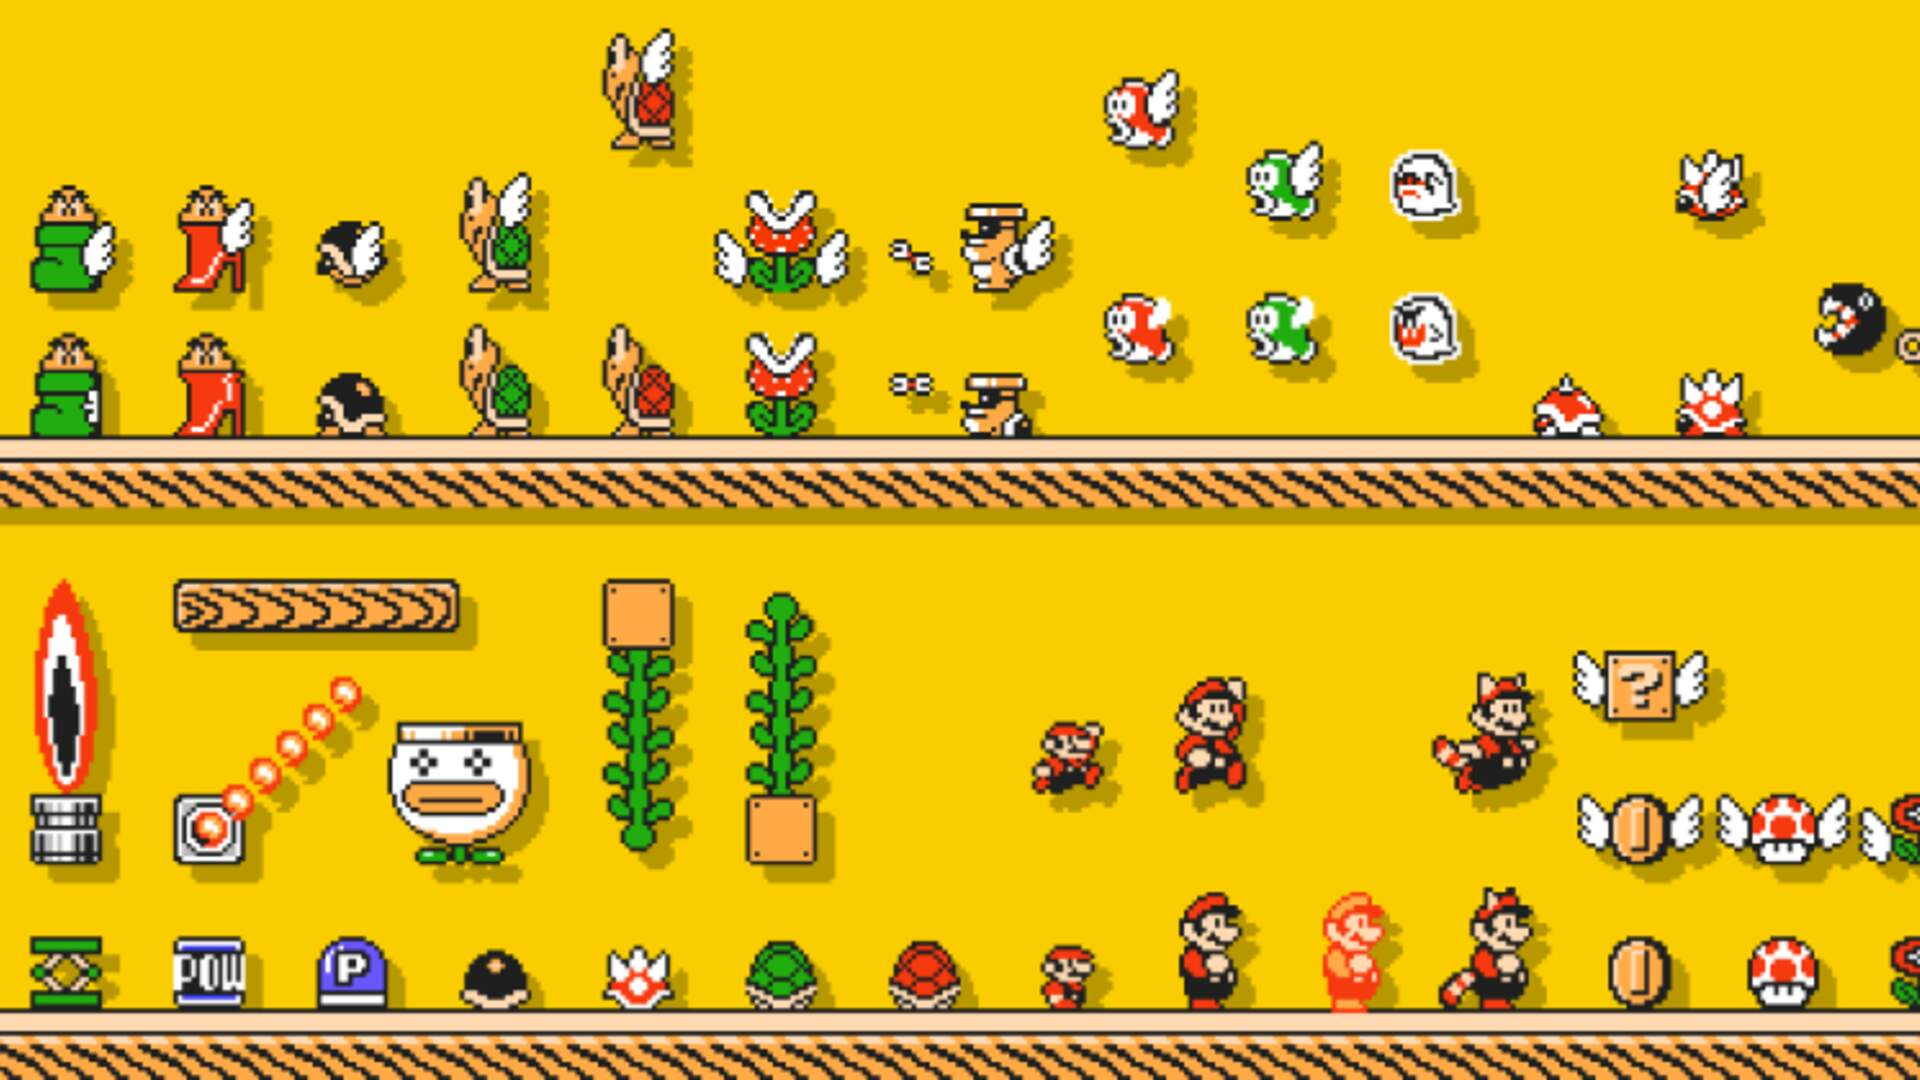 Super Mario Maker Update Adds Checkpoints and Conditional Power-Ups